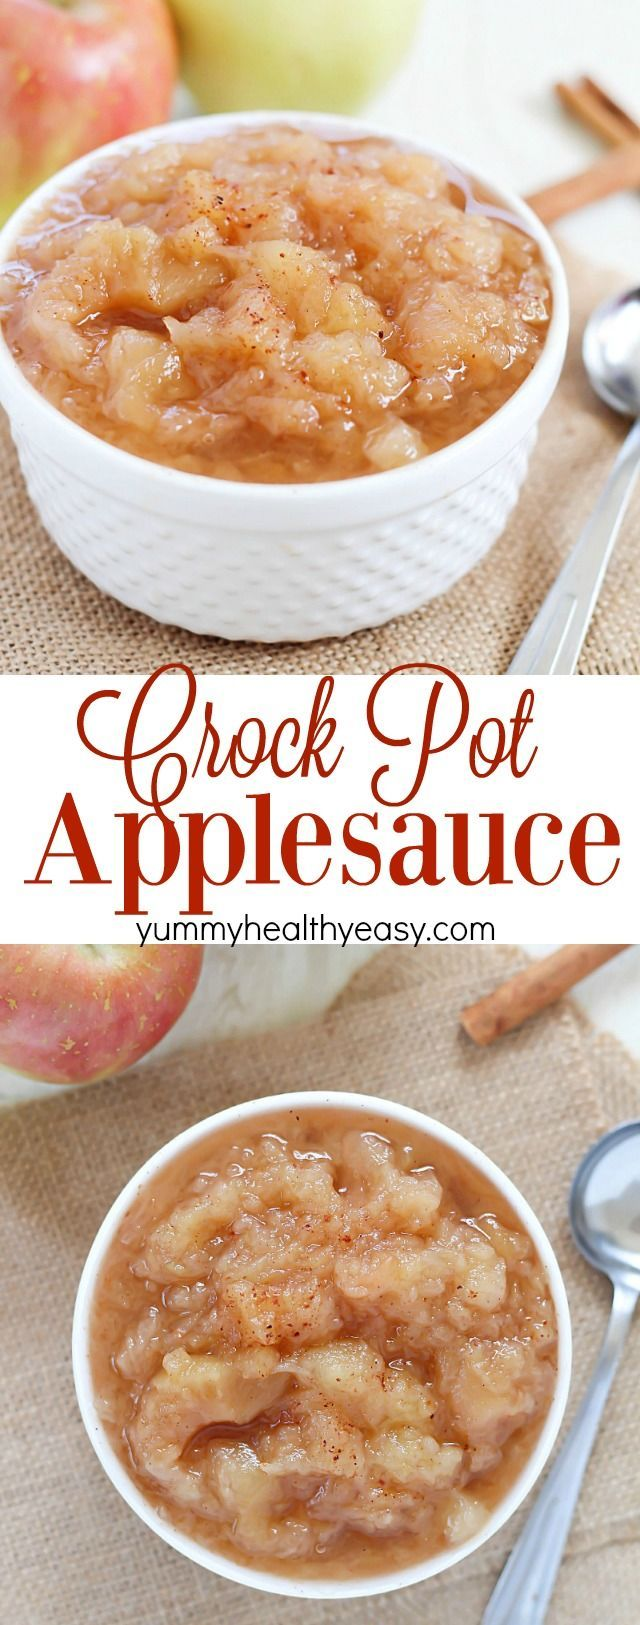 Homemade Crock Pot Applesauce is the perfect way to celebrate fall! This applesauce recipe is so simple and uses up all of those extra apples you have sitting around. Easy, only 5 ingredients, and incredibly tasty!